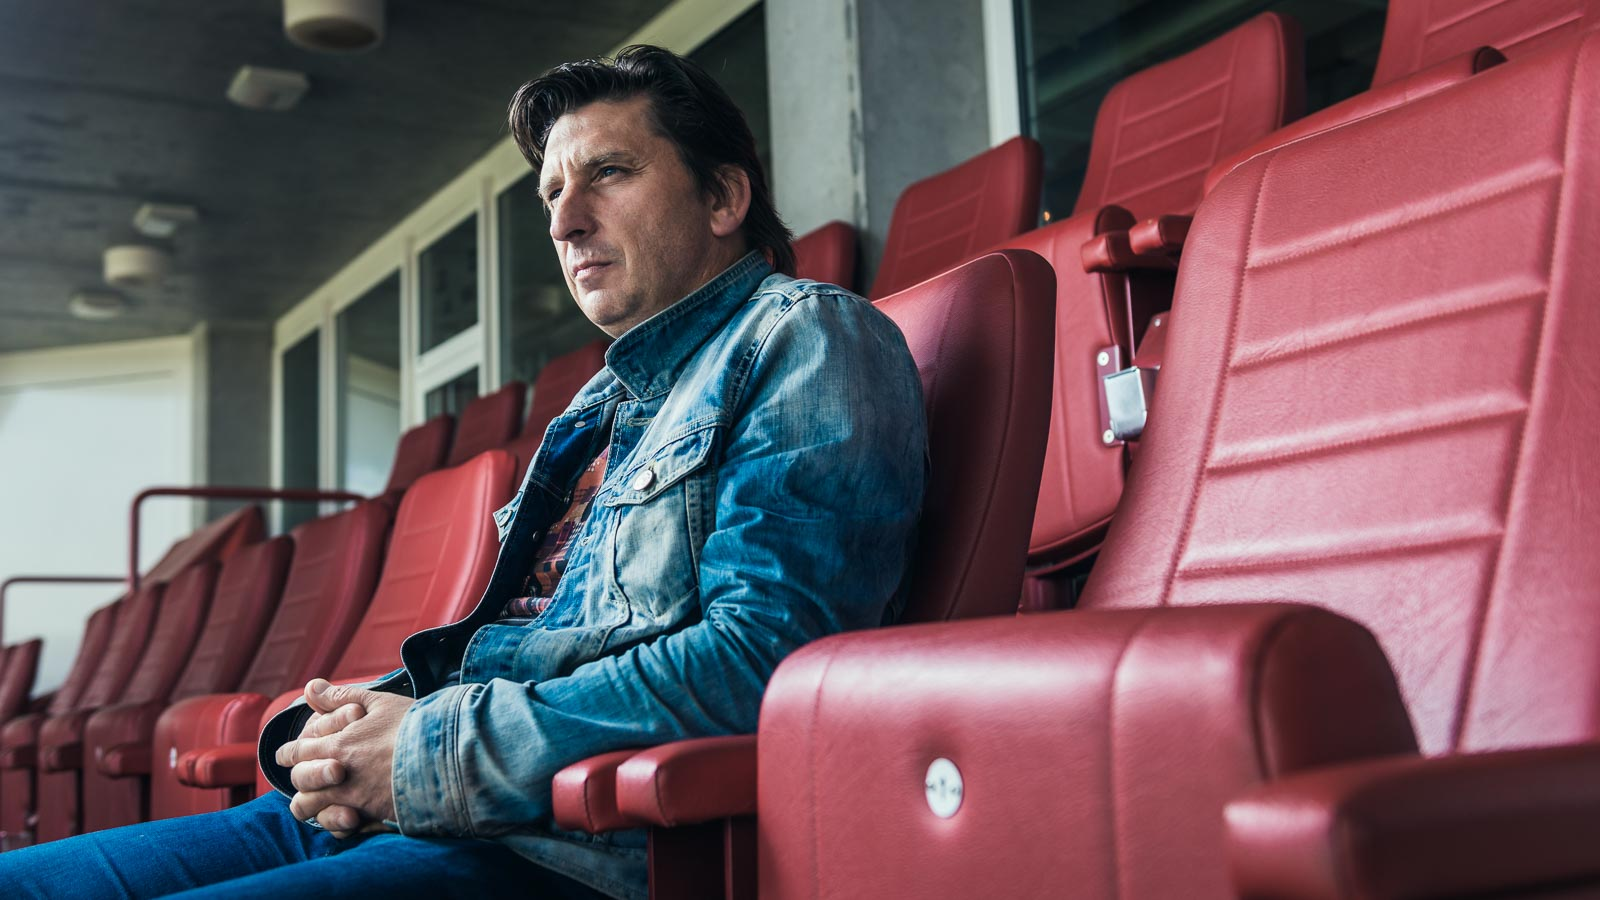 Portrait of former striker Luc Nilis in the Philips Stadium for a PSV Eindhoven marketing campaign